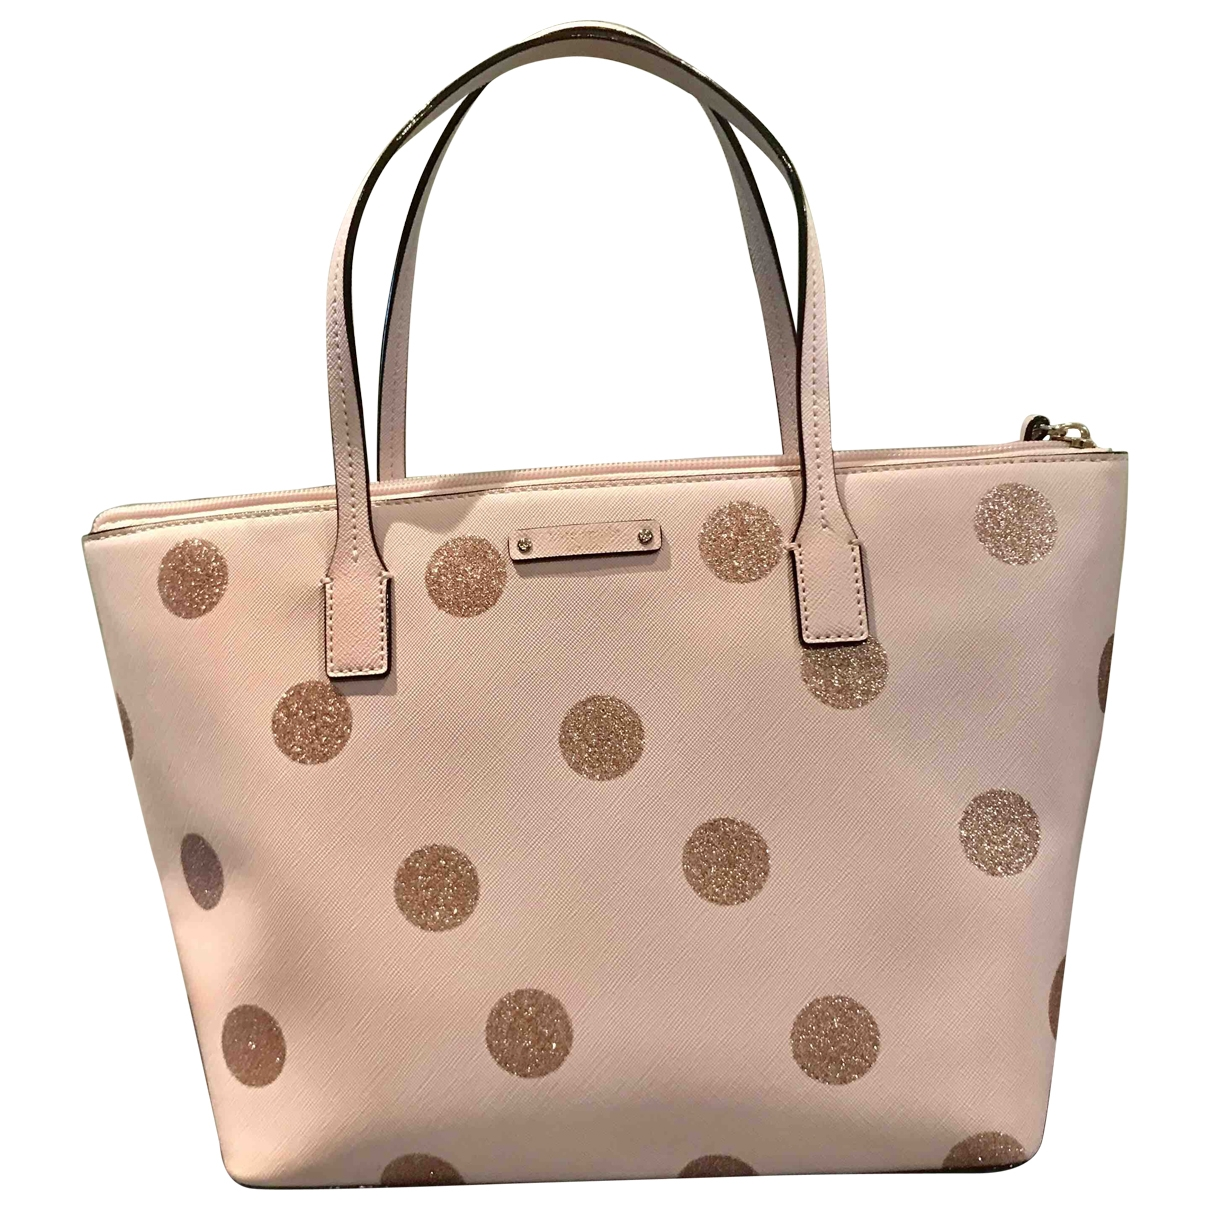 Kate Spade \N Pink Leather handbag for Women \N